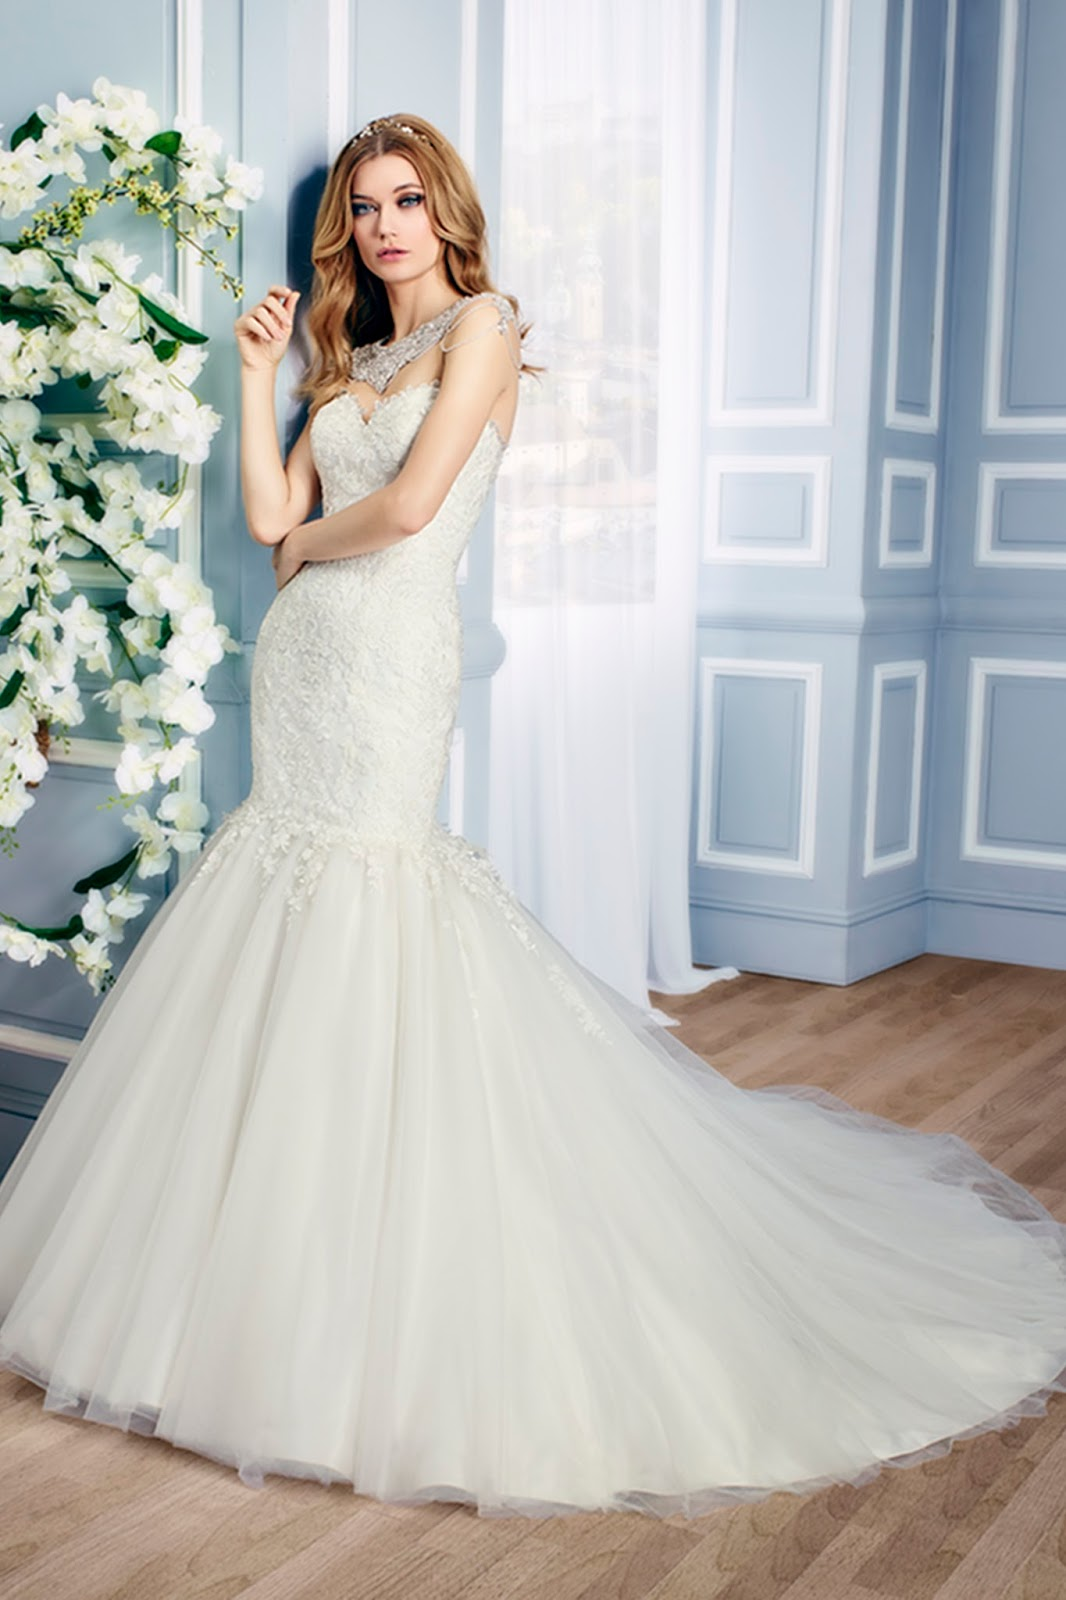 05e450cdd6e These bridal gowns are perfect for the bride who wants to look  sophisticated and stunning on her wedding day! Check out the fabulous  styles in this latest ...